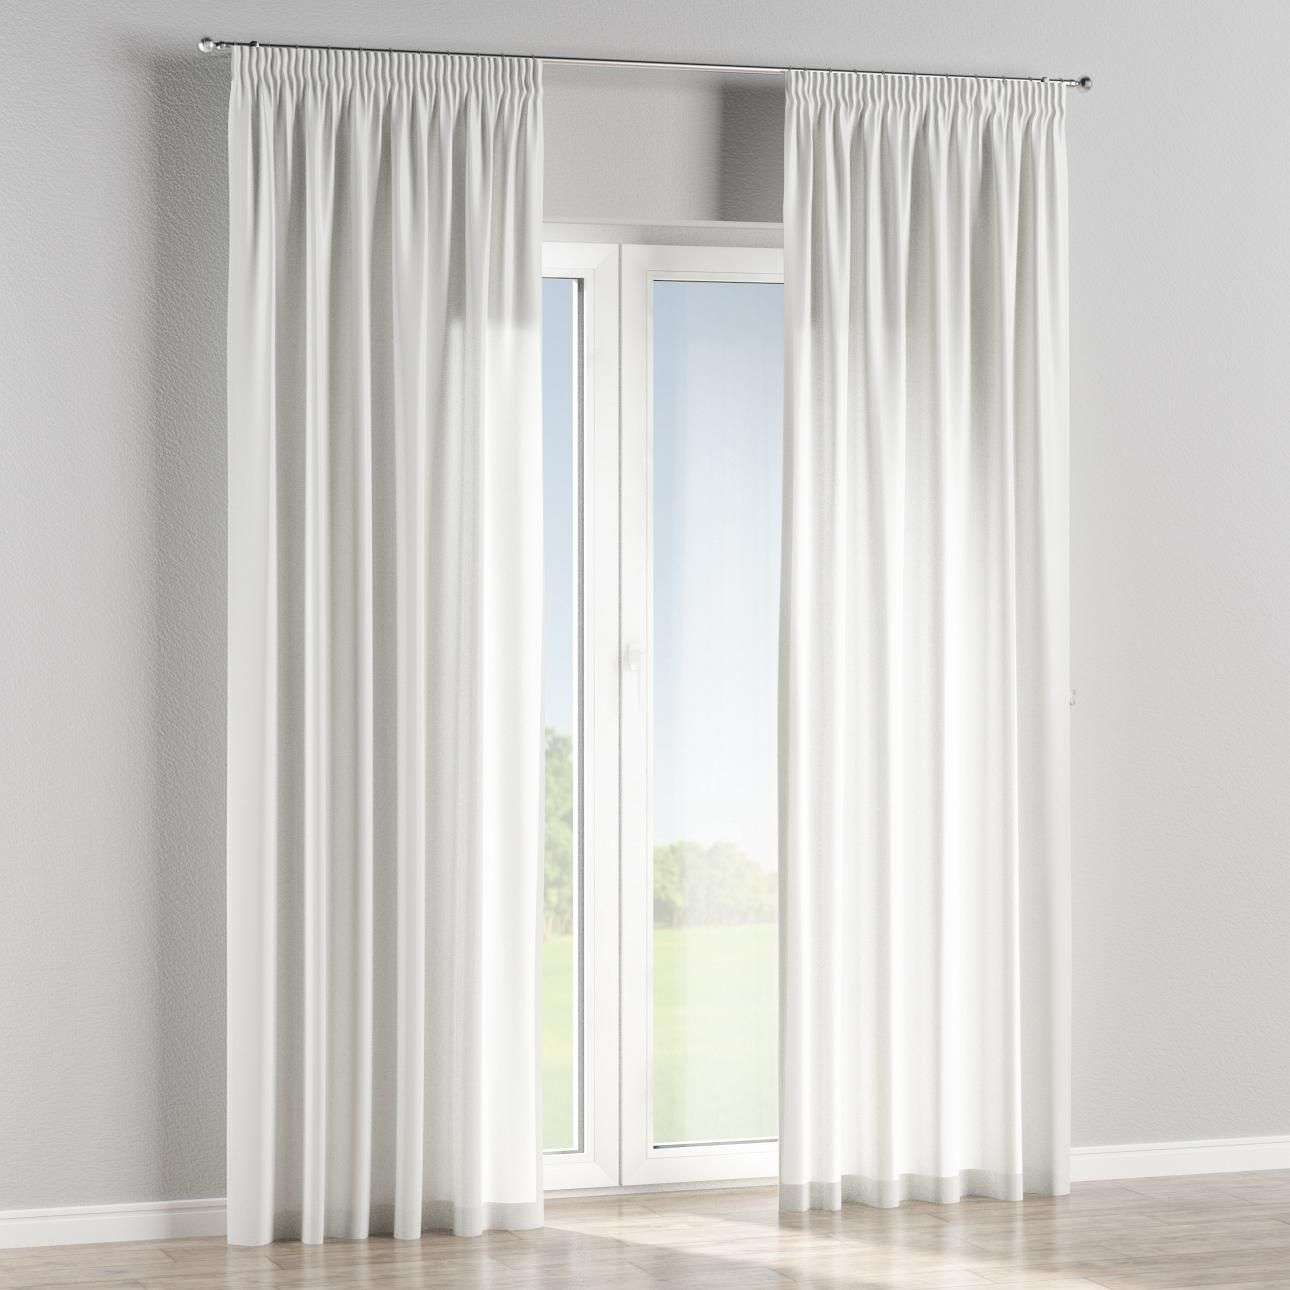 Pencil pleat curtains in collection Ashley, fabric: 137-47